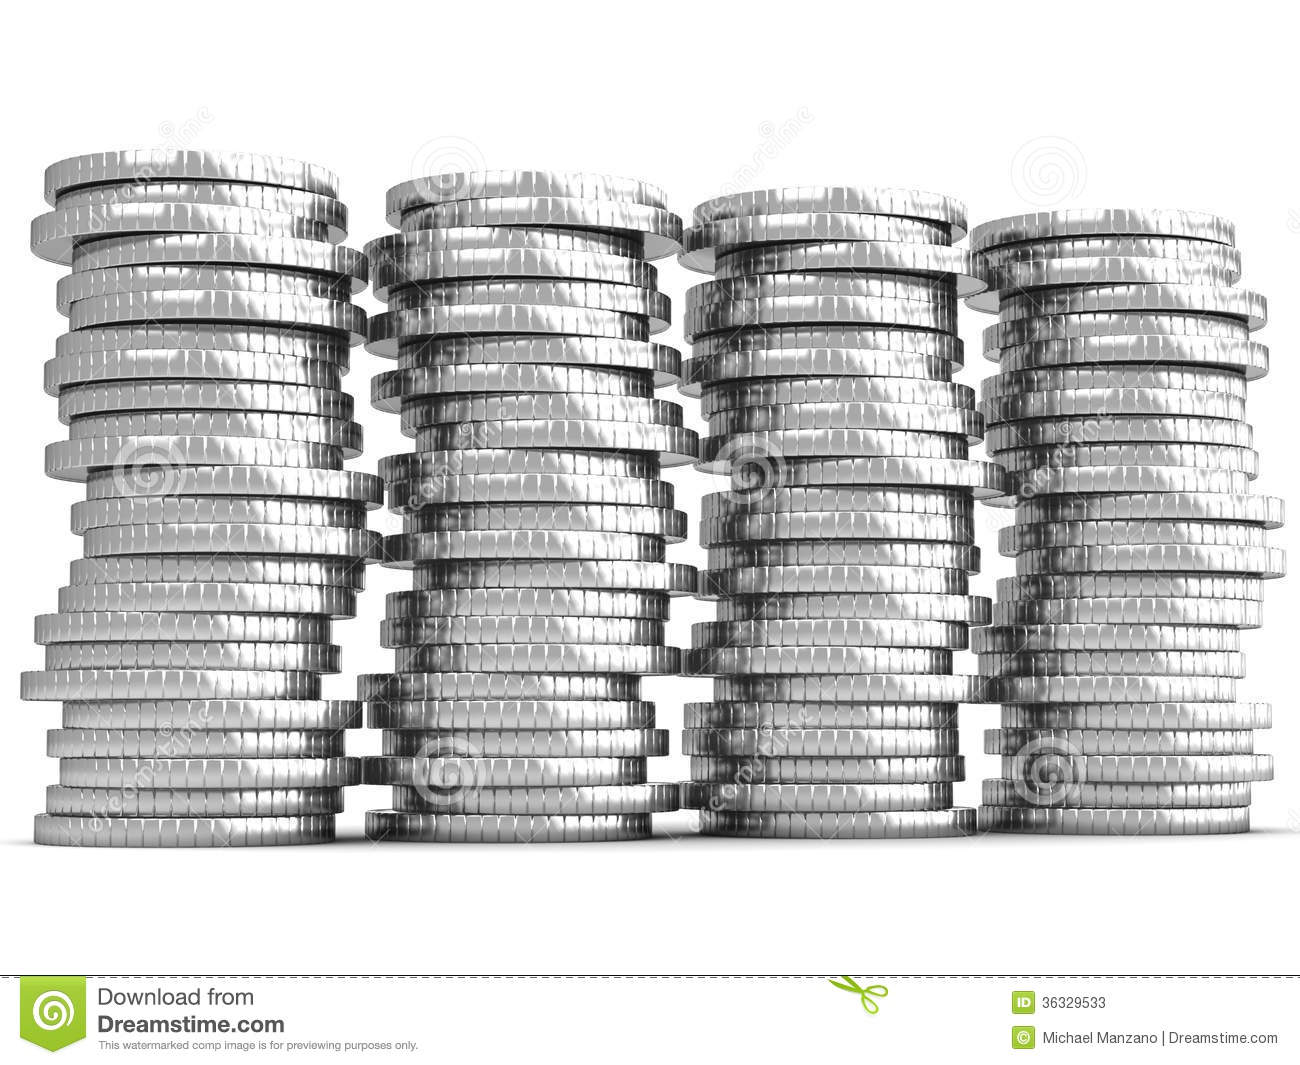 Randall also Coin Money Savings Stack Illustration Four Stacks Silver Coins Showing Bank as well P Yen A moreover Tumblr Nqn C C Nw Uz Vio as well Facebook. on stacks of cash money